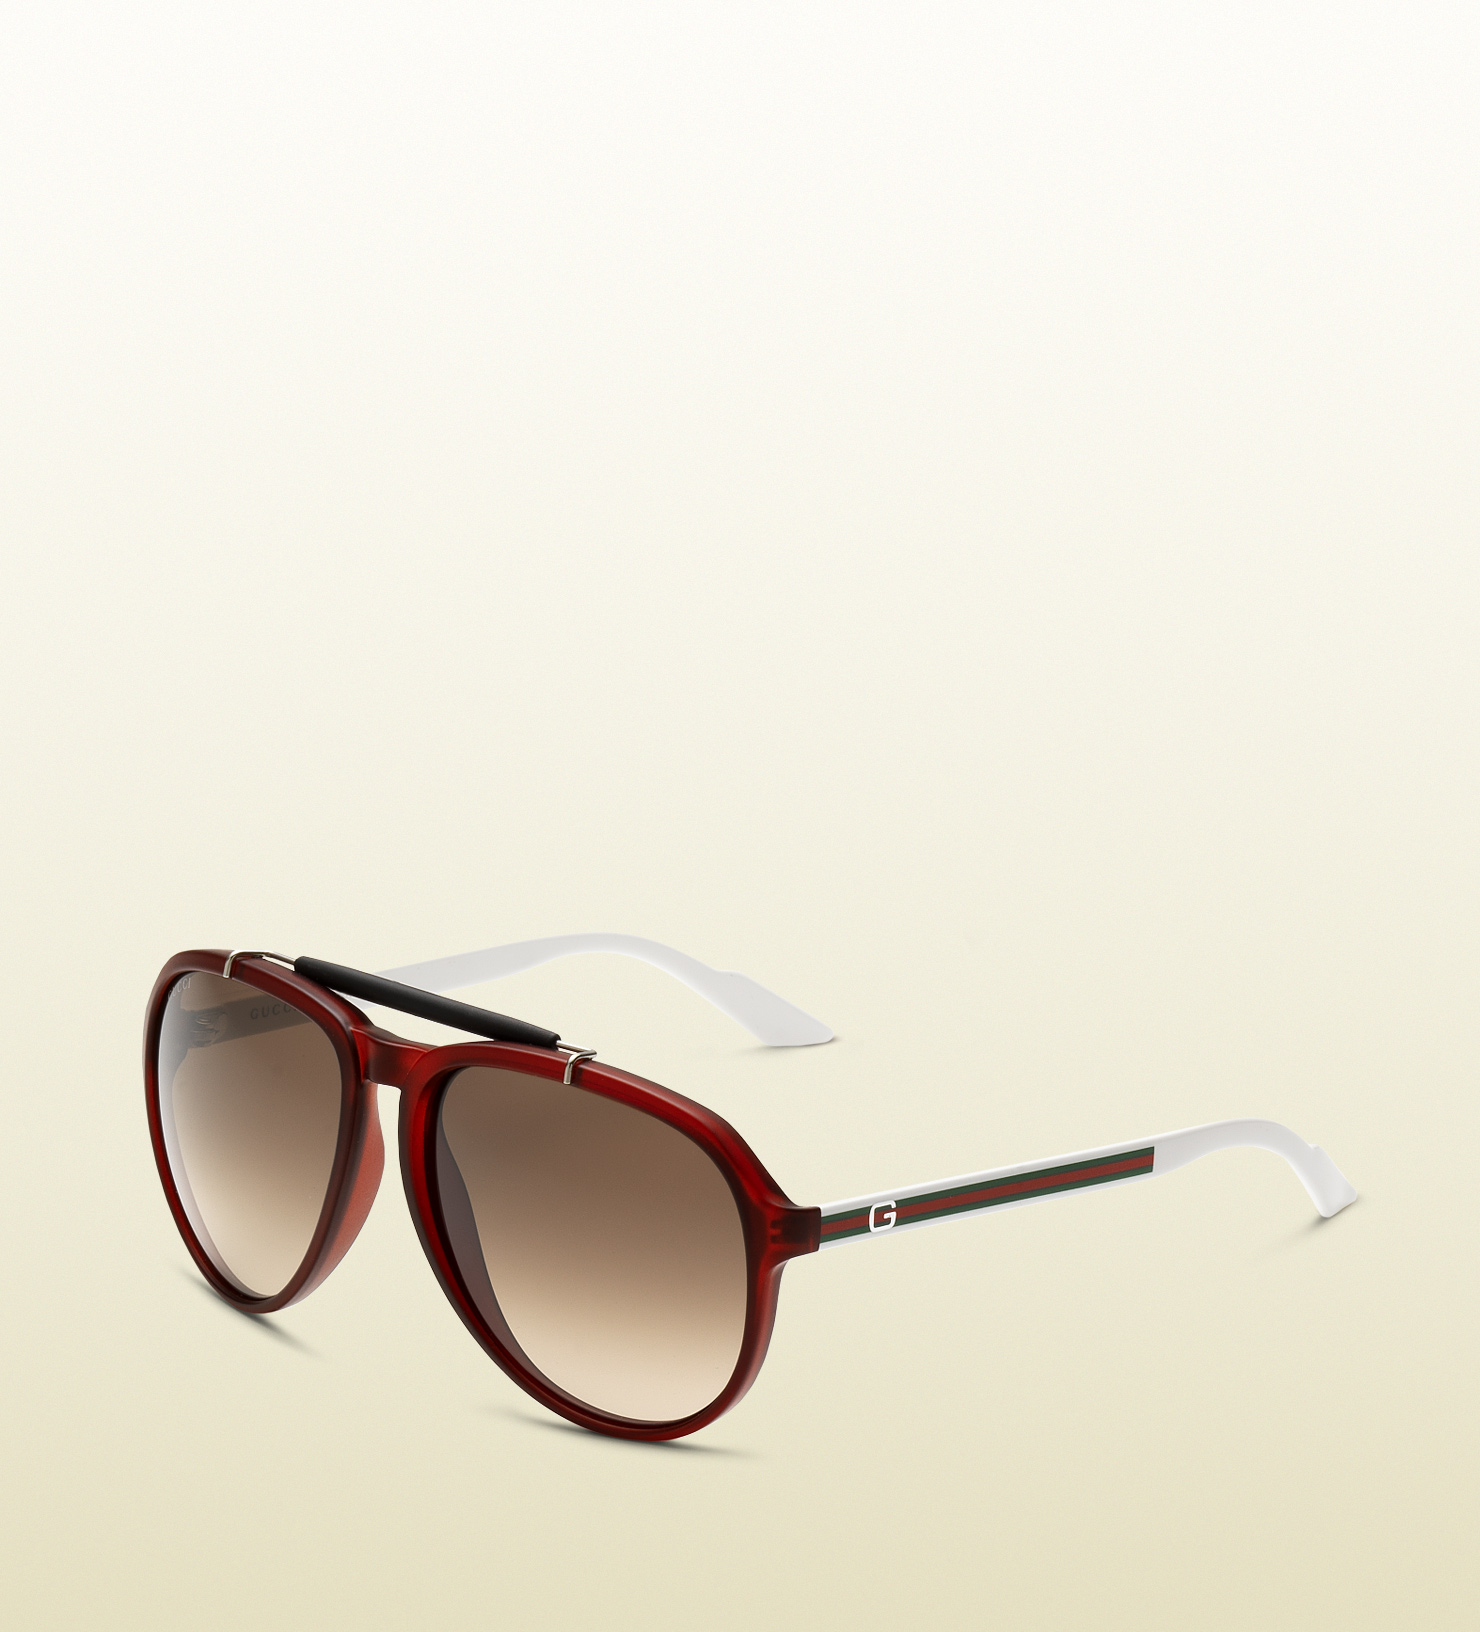 bd9c88519cc Lyst - Gucci Mens Red Biobased Sunglasses in Red for Men